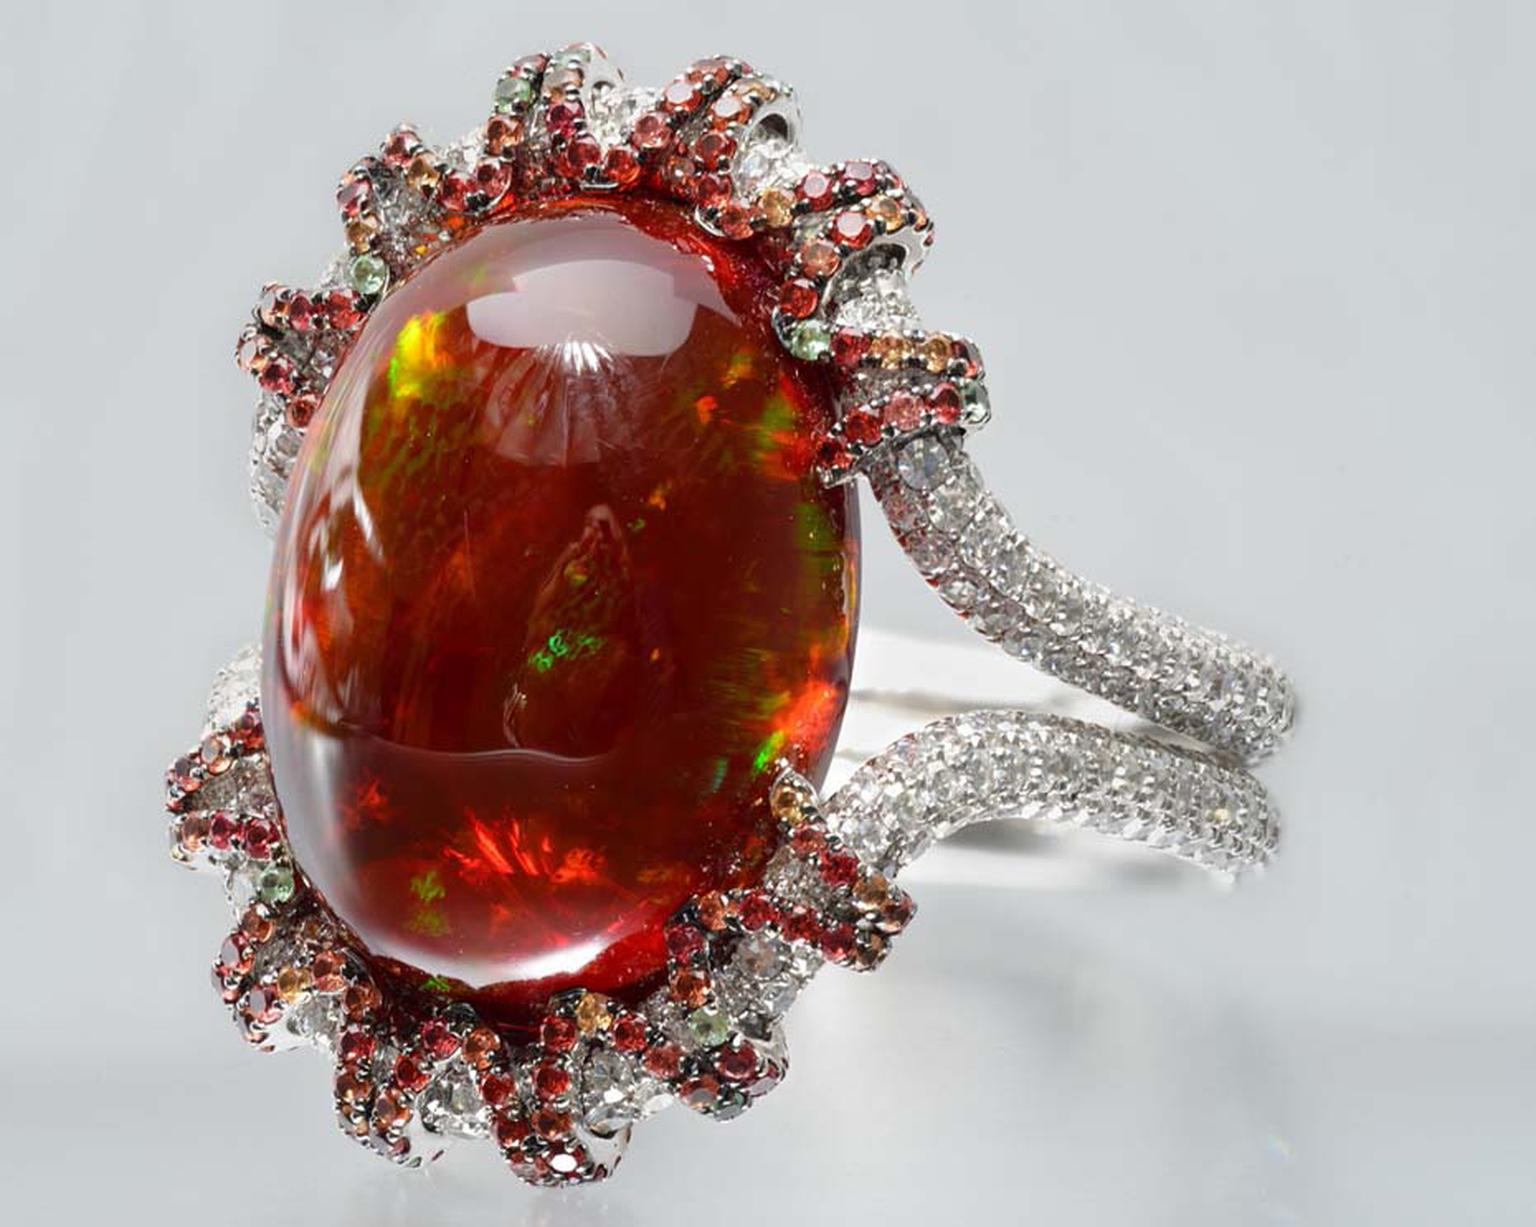 Martin Katz white gold ring with a 13.18ct oval red opal cabochon, microset with diamonds, tsavorite garnets and orange-red sapphires.